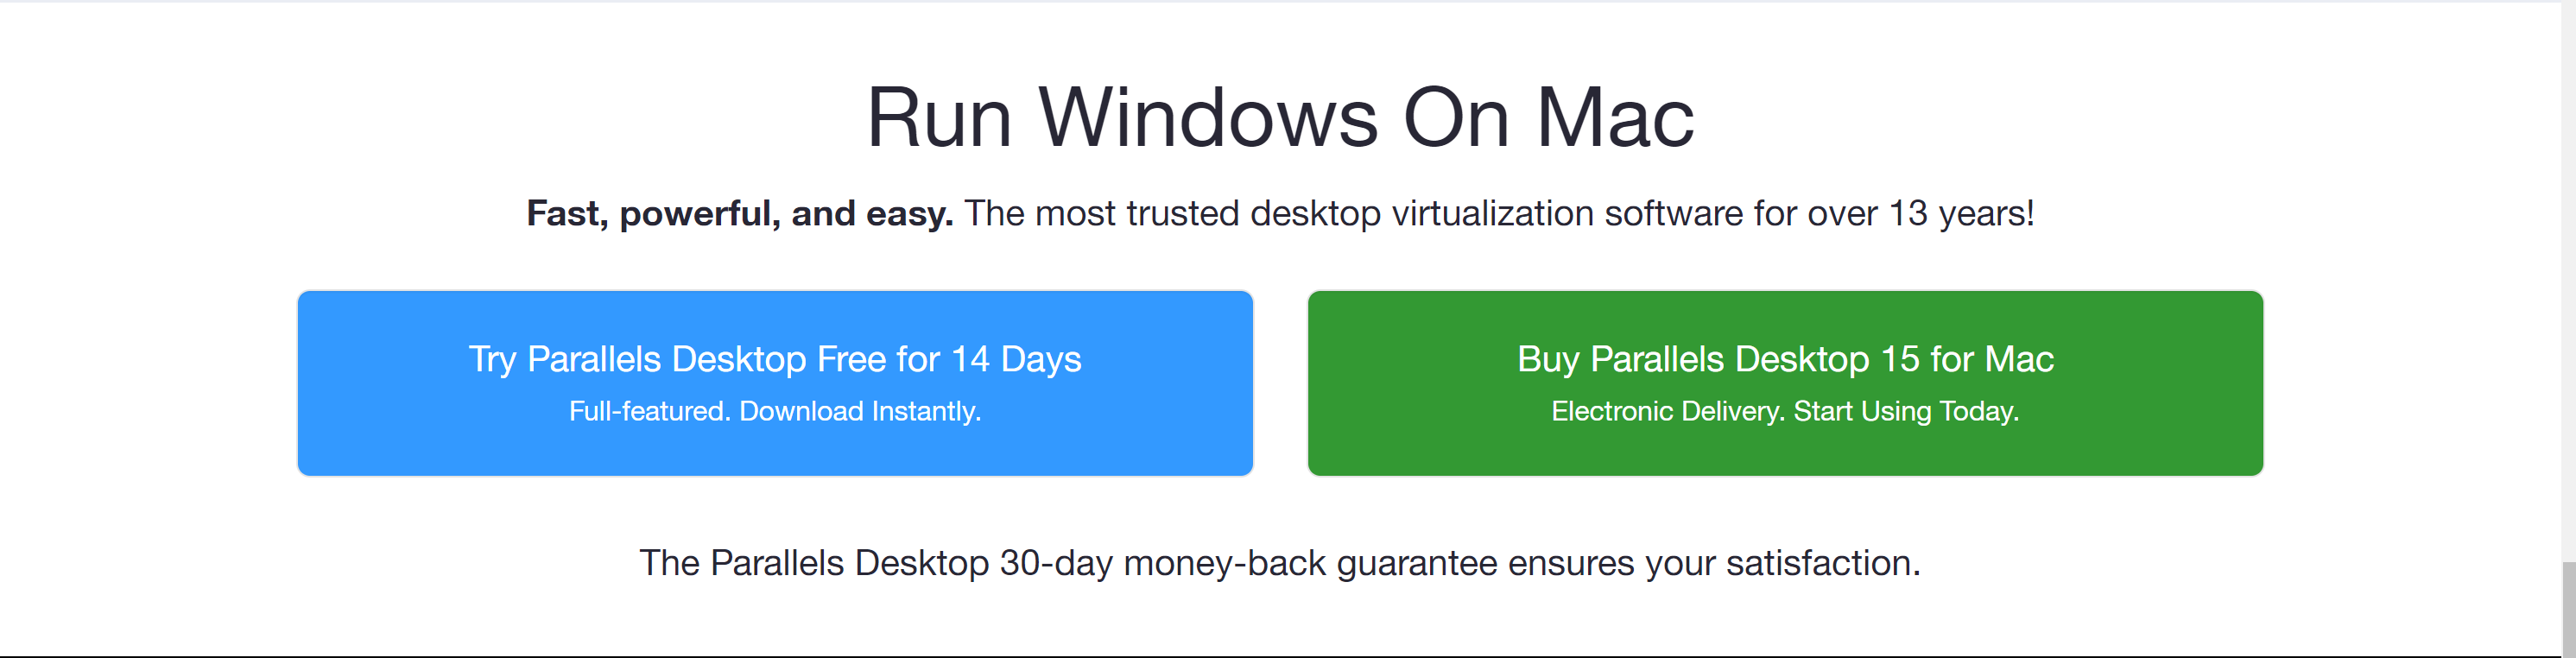 Desktop windows for mac